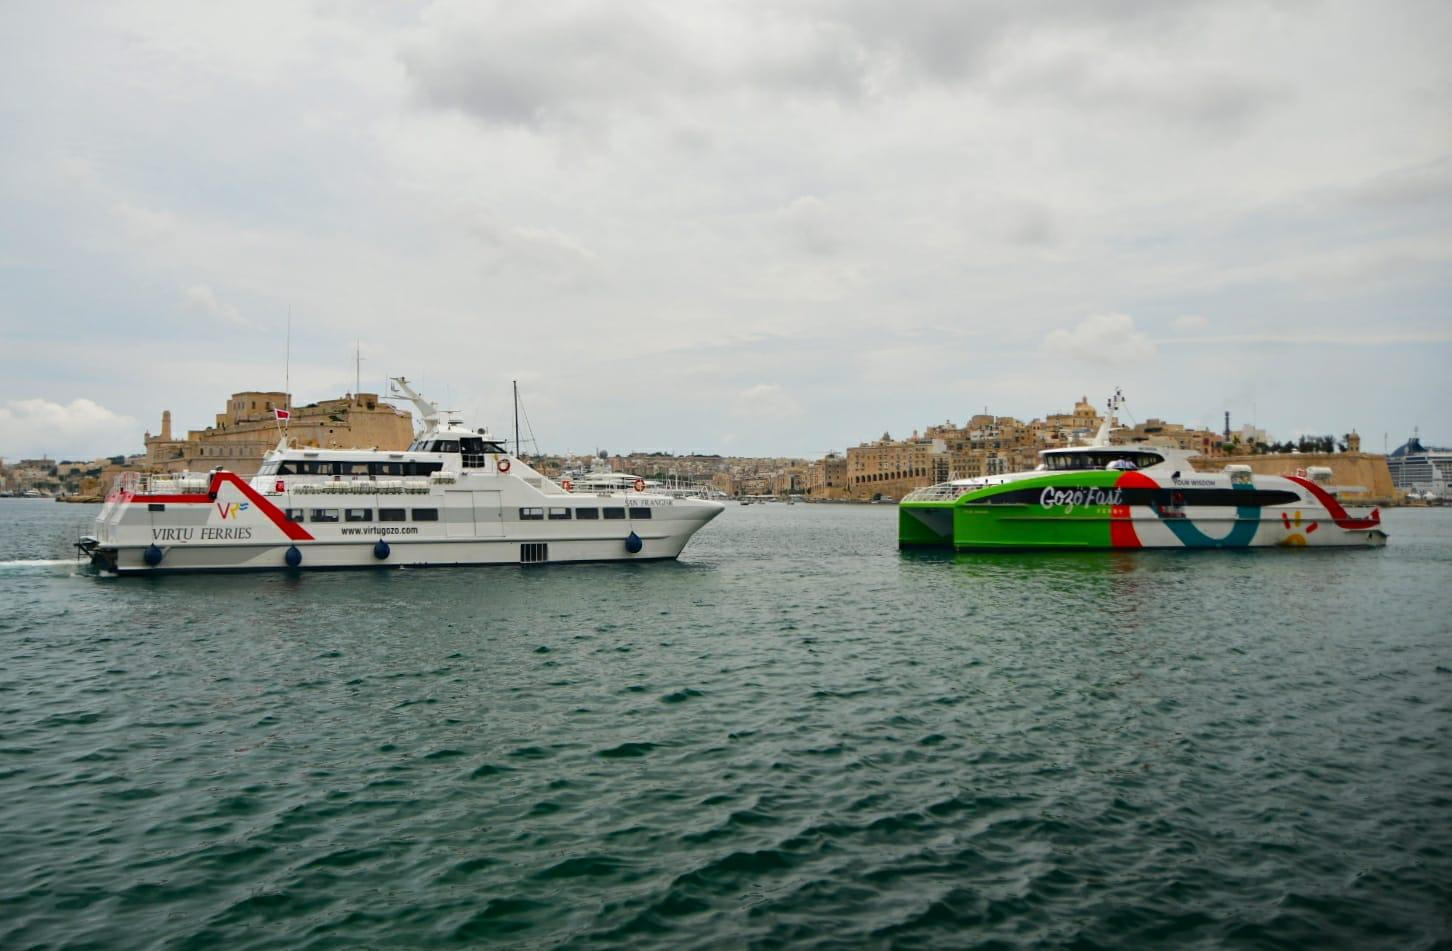 Costumers can now book a trip with either Virtu Ferries or Gozo Fast Ferry, with booking starting from today at 4pm Photo: Jonathan Borg